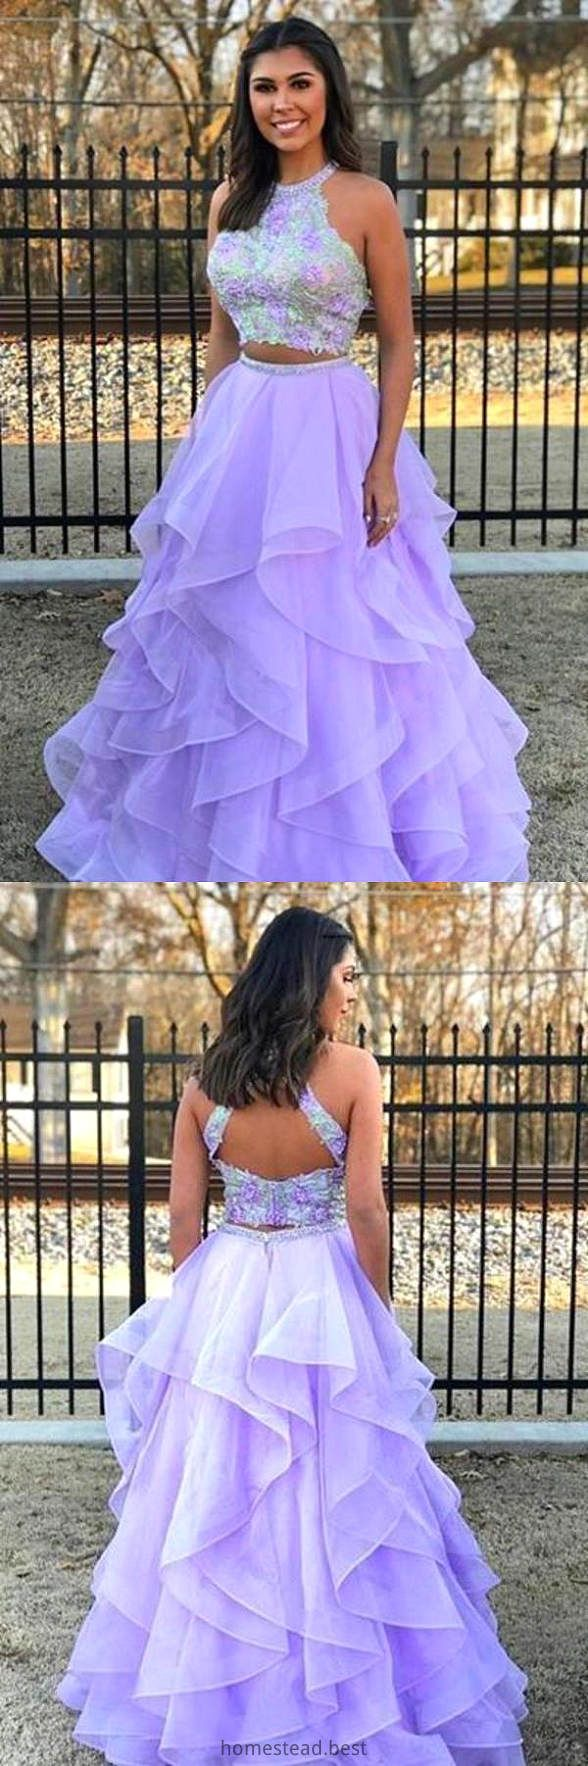 Two Pieces A Line Lace Top Open Back Organza Sleeveless Prom Dresses Evening Dress Eth14008 Lilac Prom Dresses Piece Prom Dress Prom Dresses Sleeveless [ 1766 x 588 Pixel ]